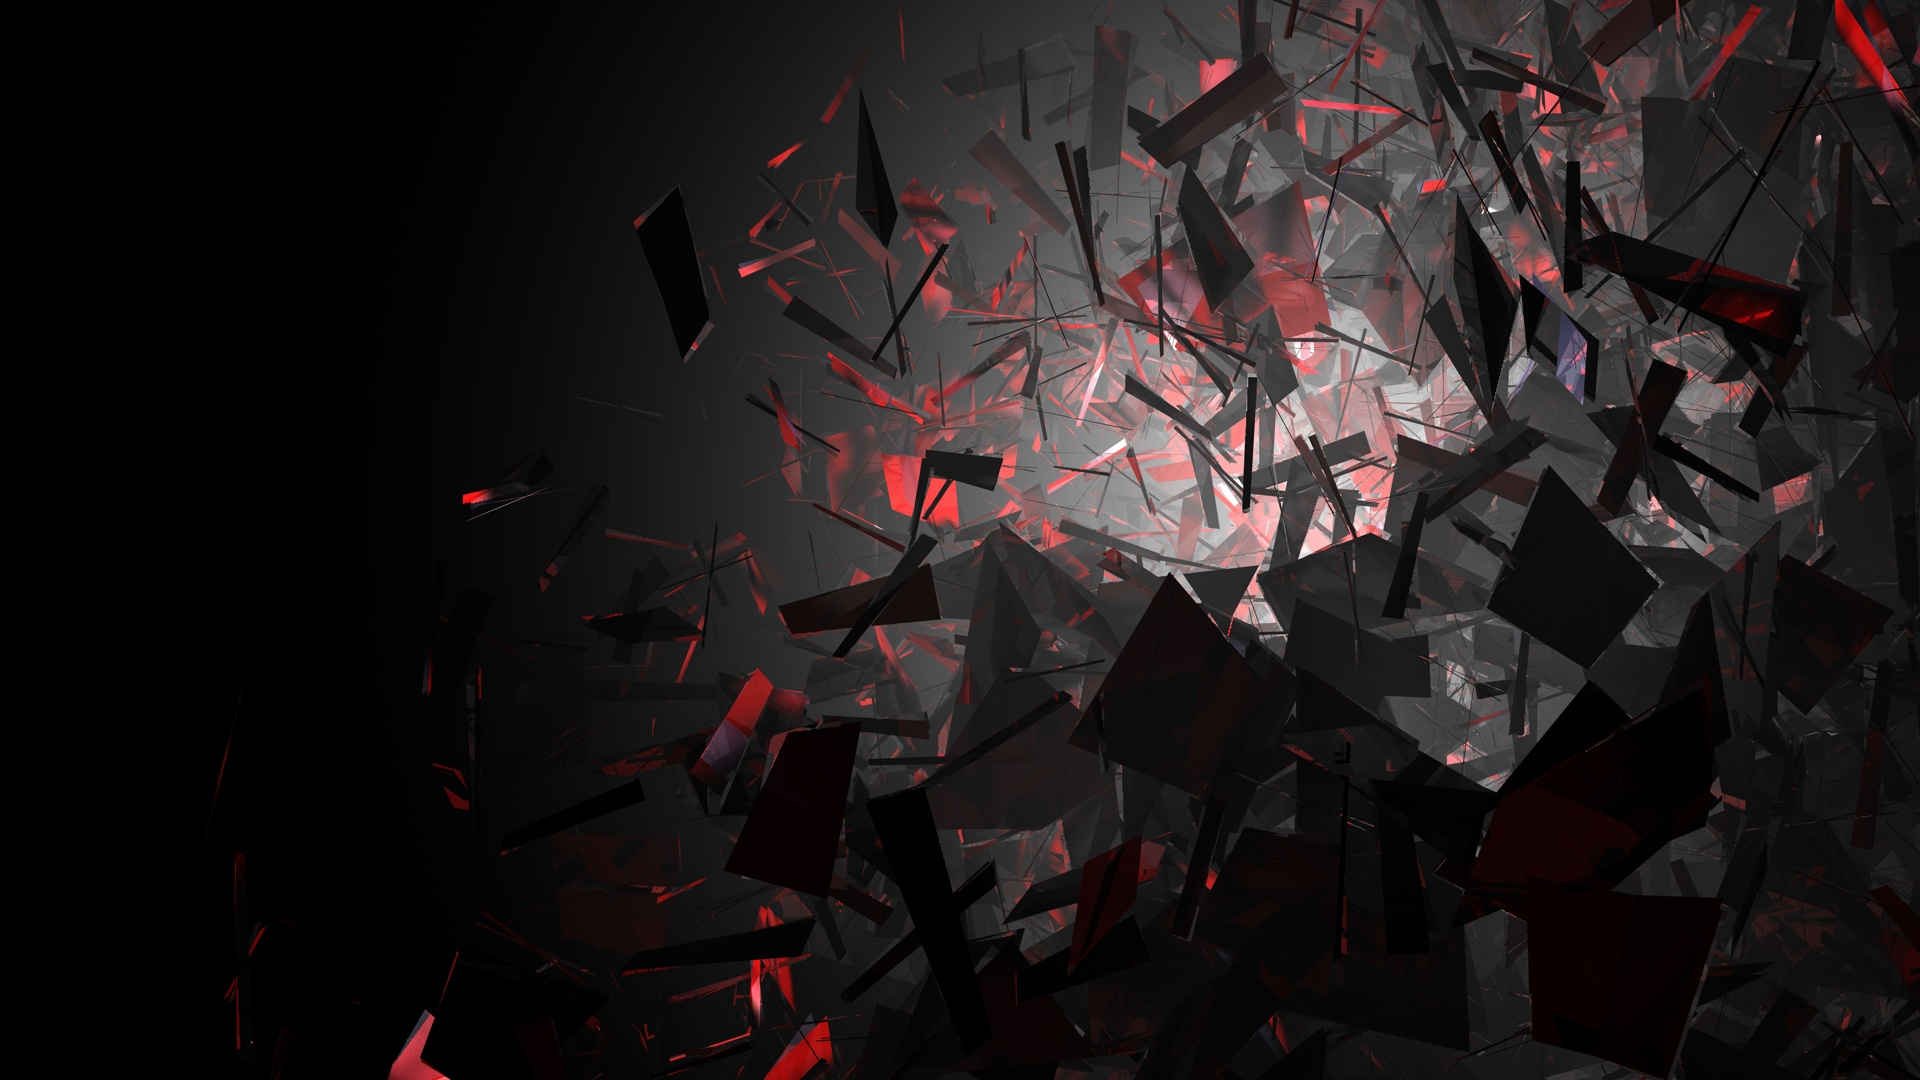 Download Abstract Dark Wallpaper 1920x1080 Wallpoper 172290 1920x1080